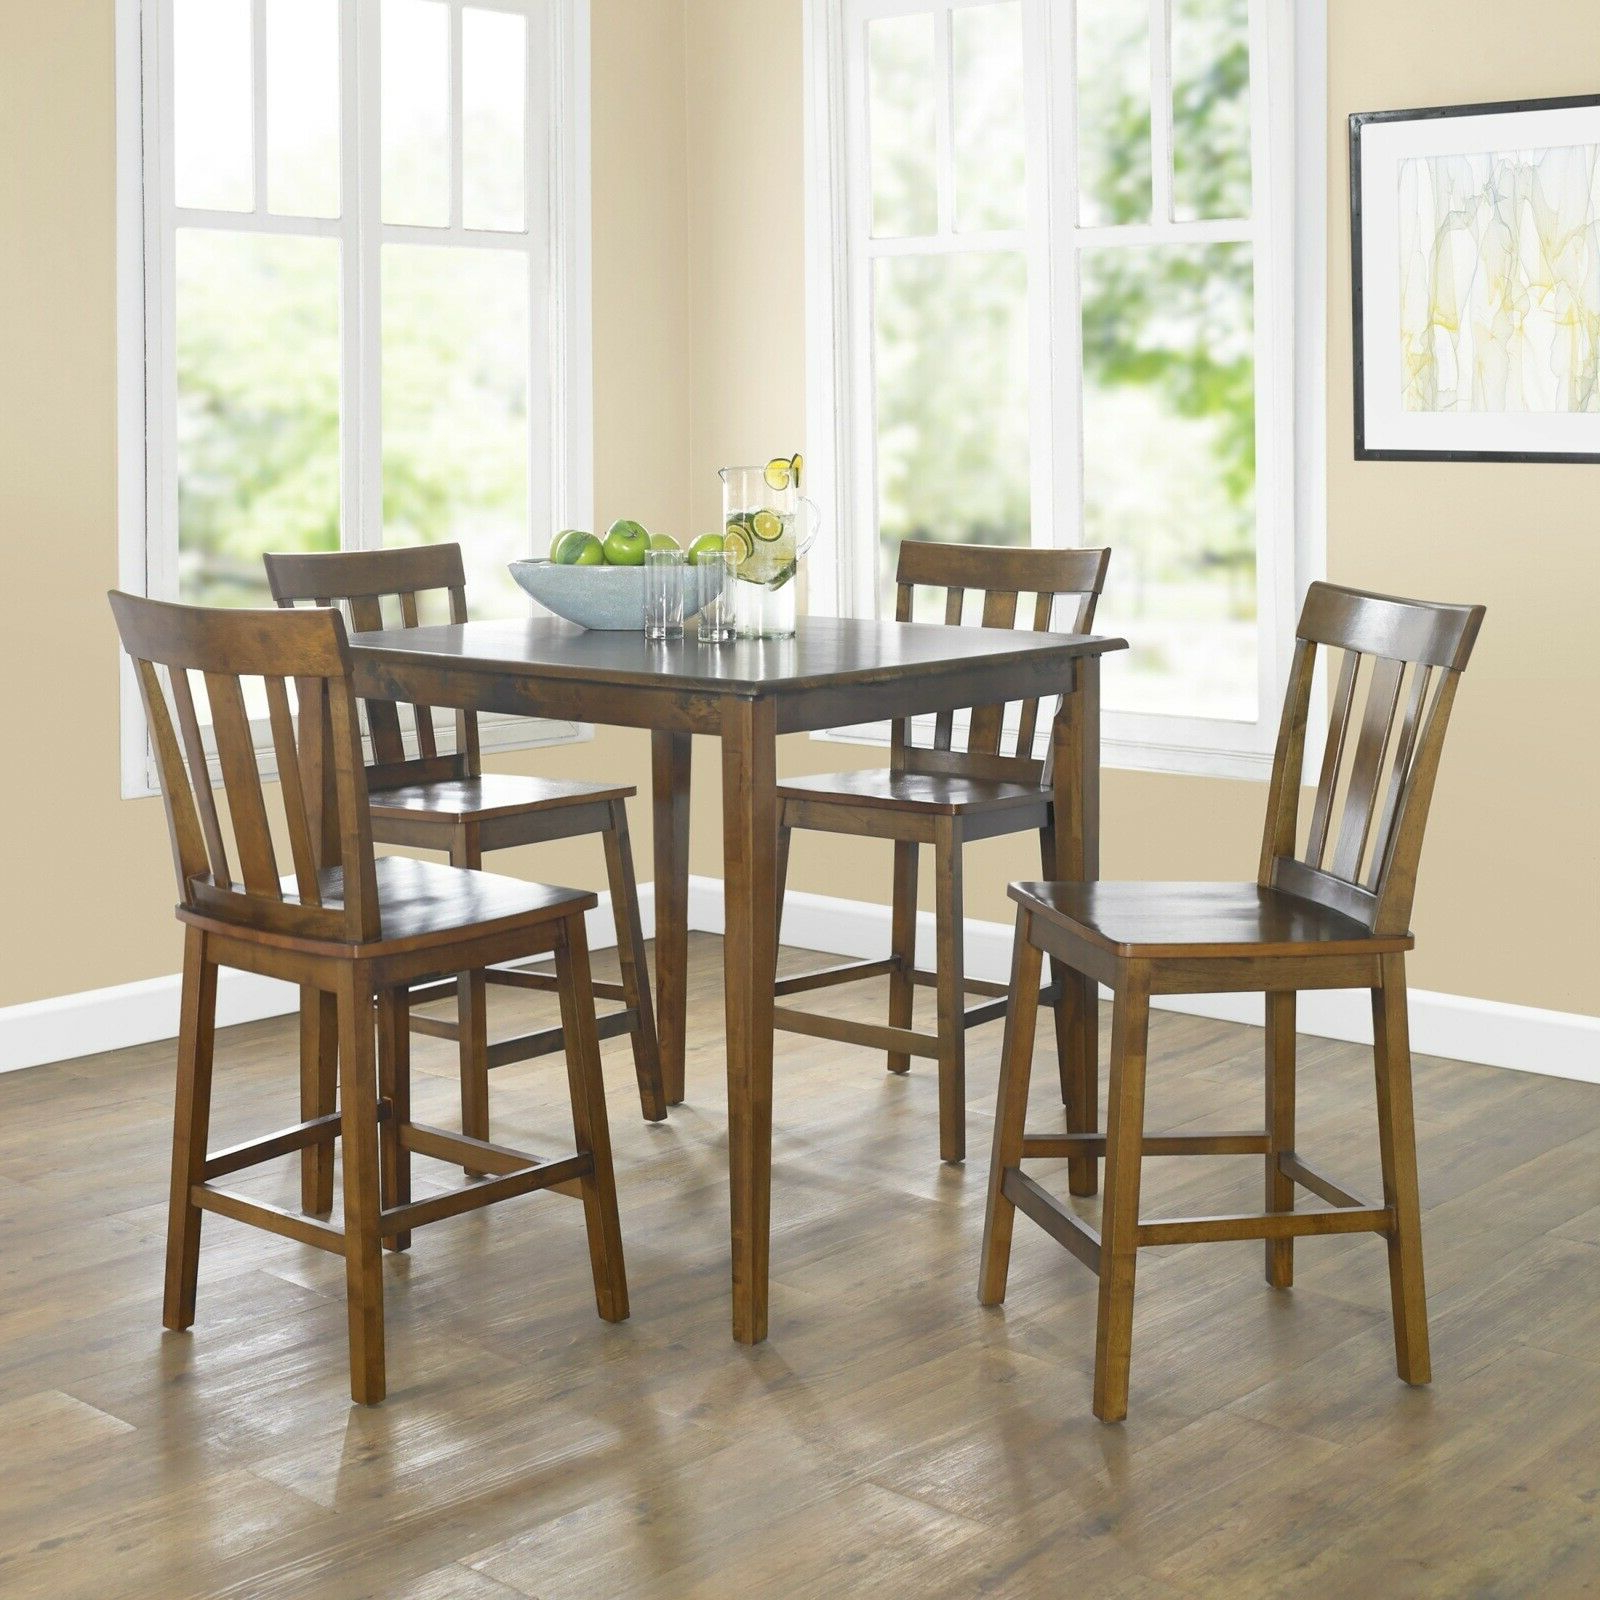 Most Recent 5 Piece Breakfast Nook Dining Sets Within Details About Table And Chairs Dining Set Counter Height Sets 5 Piece  Kitchen Pub Breakfast (View 10 of 20)